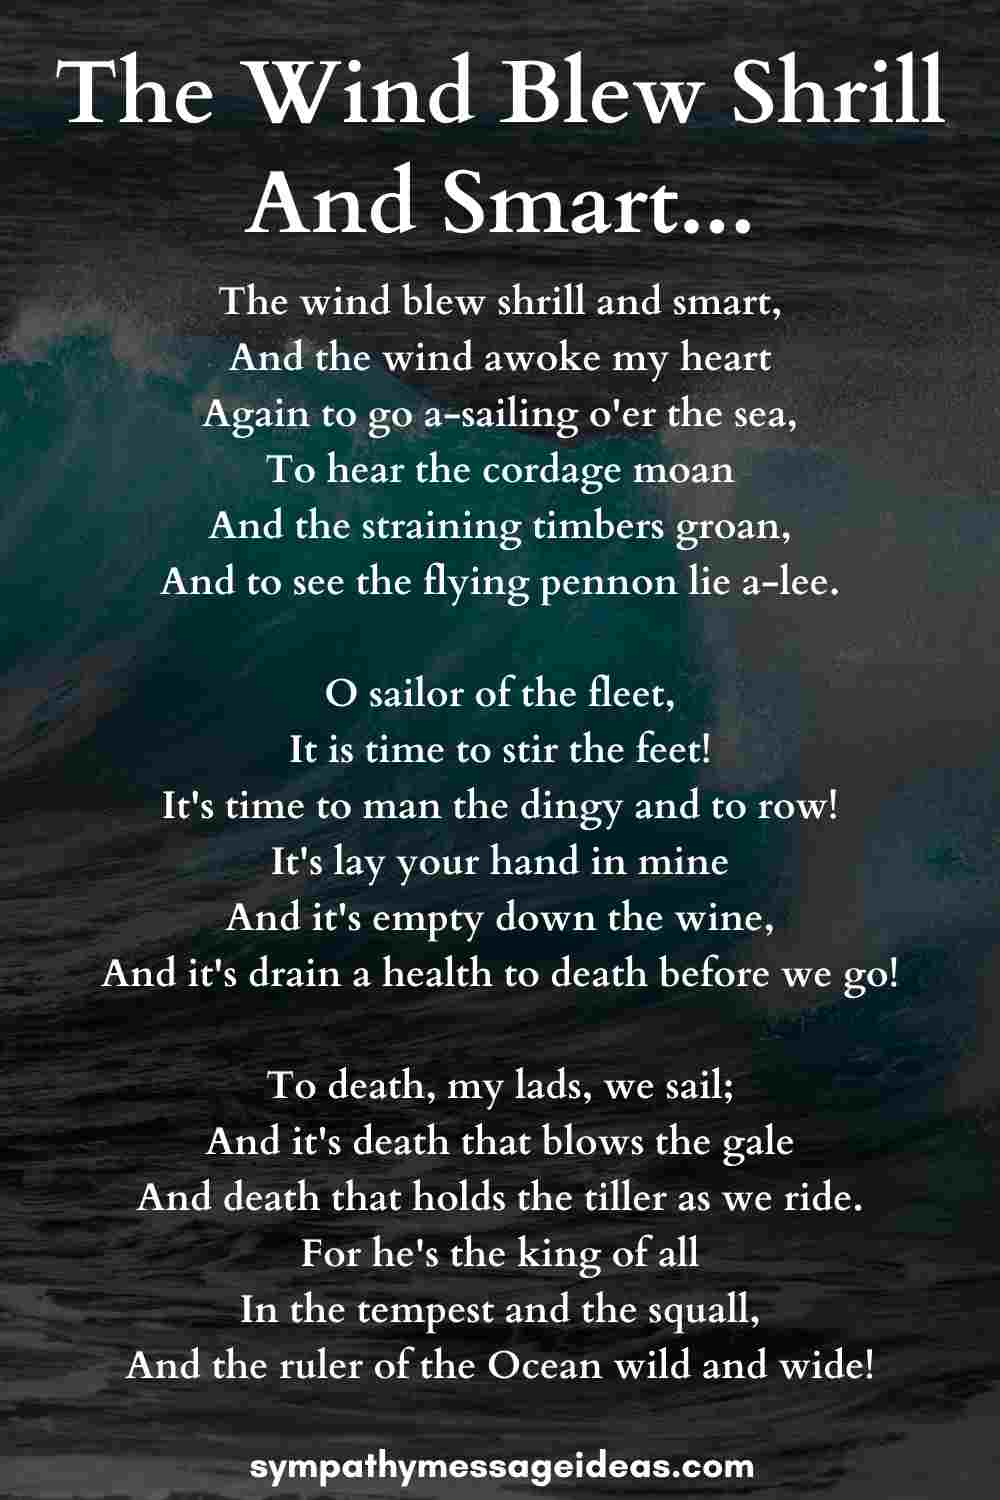 the wind blew shrill and smart sad poem